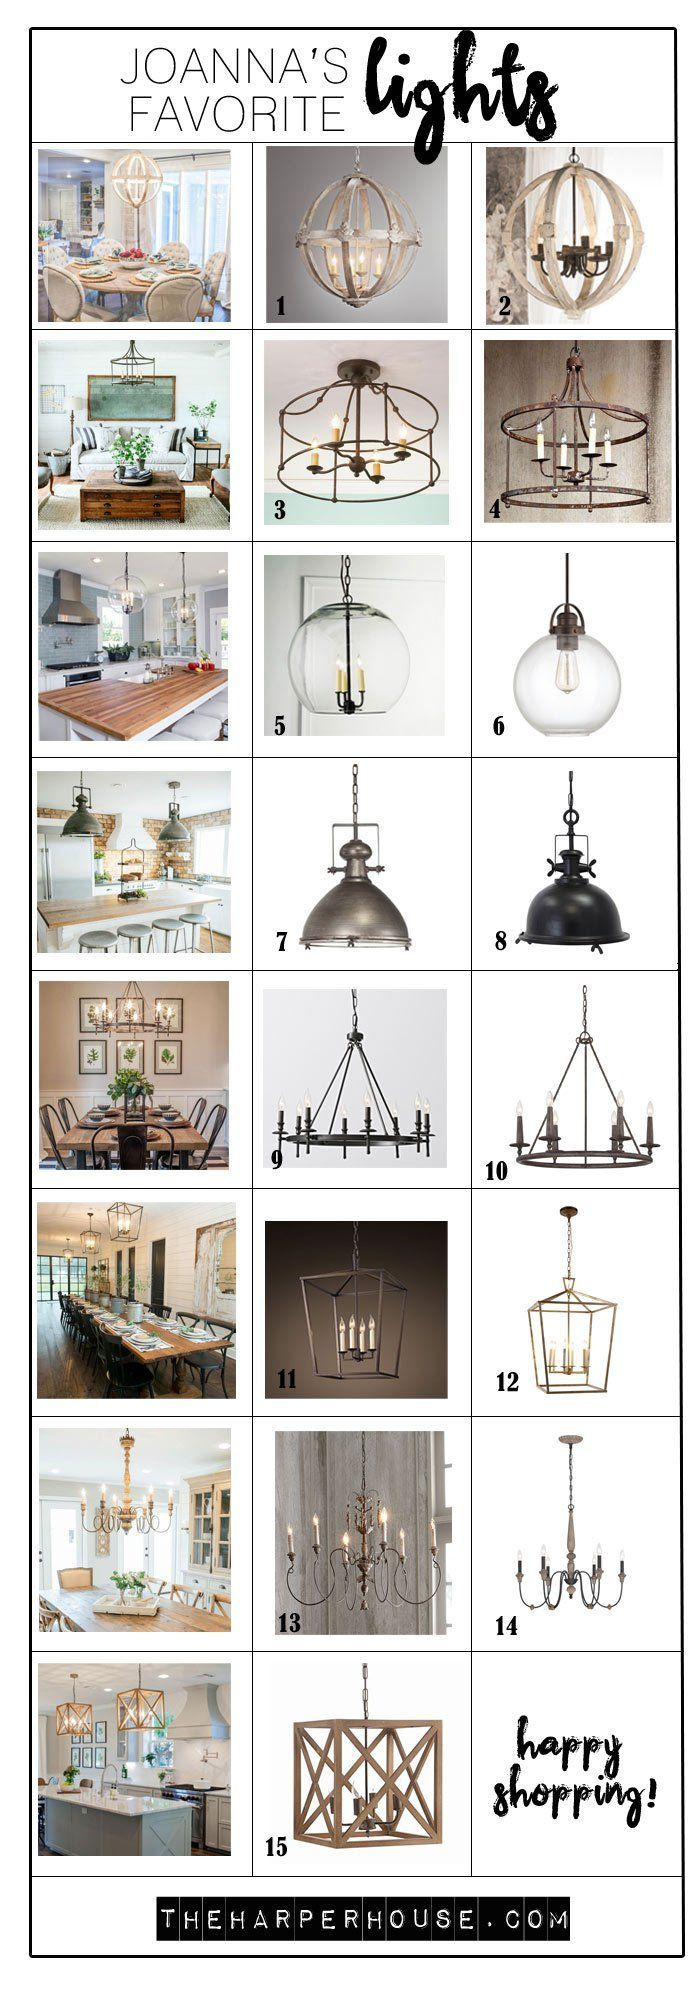 Joannau0027s Favorite Light Fixtures For Fixer Upper Style. Kitchen LightingDining  Room ...